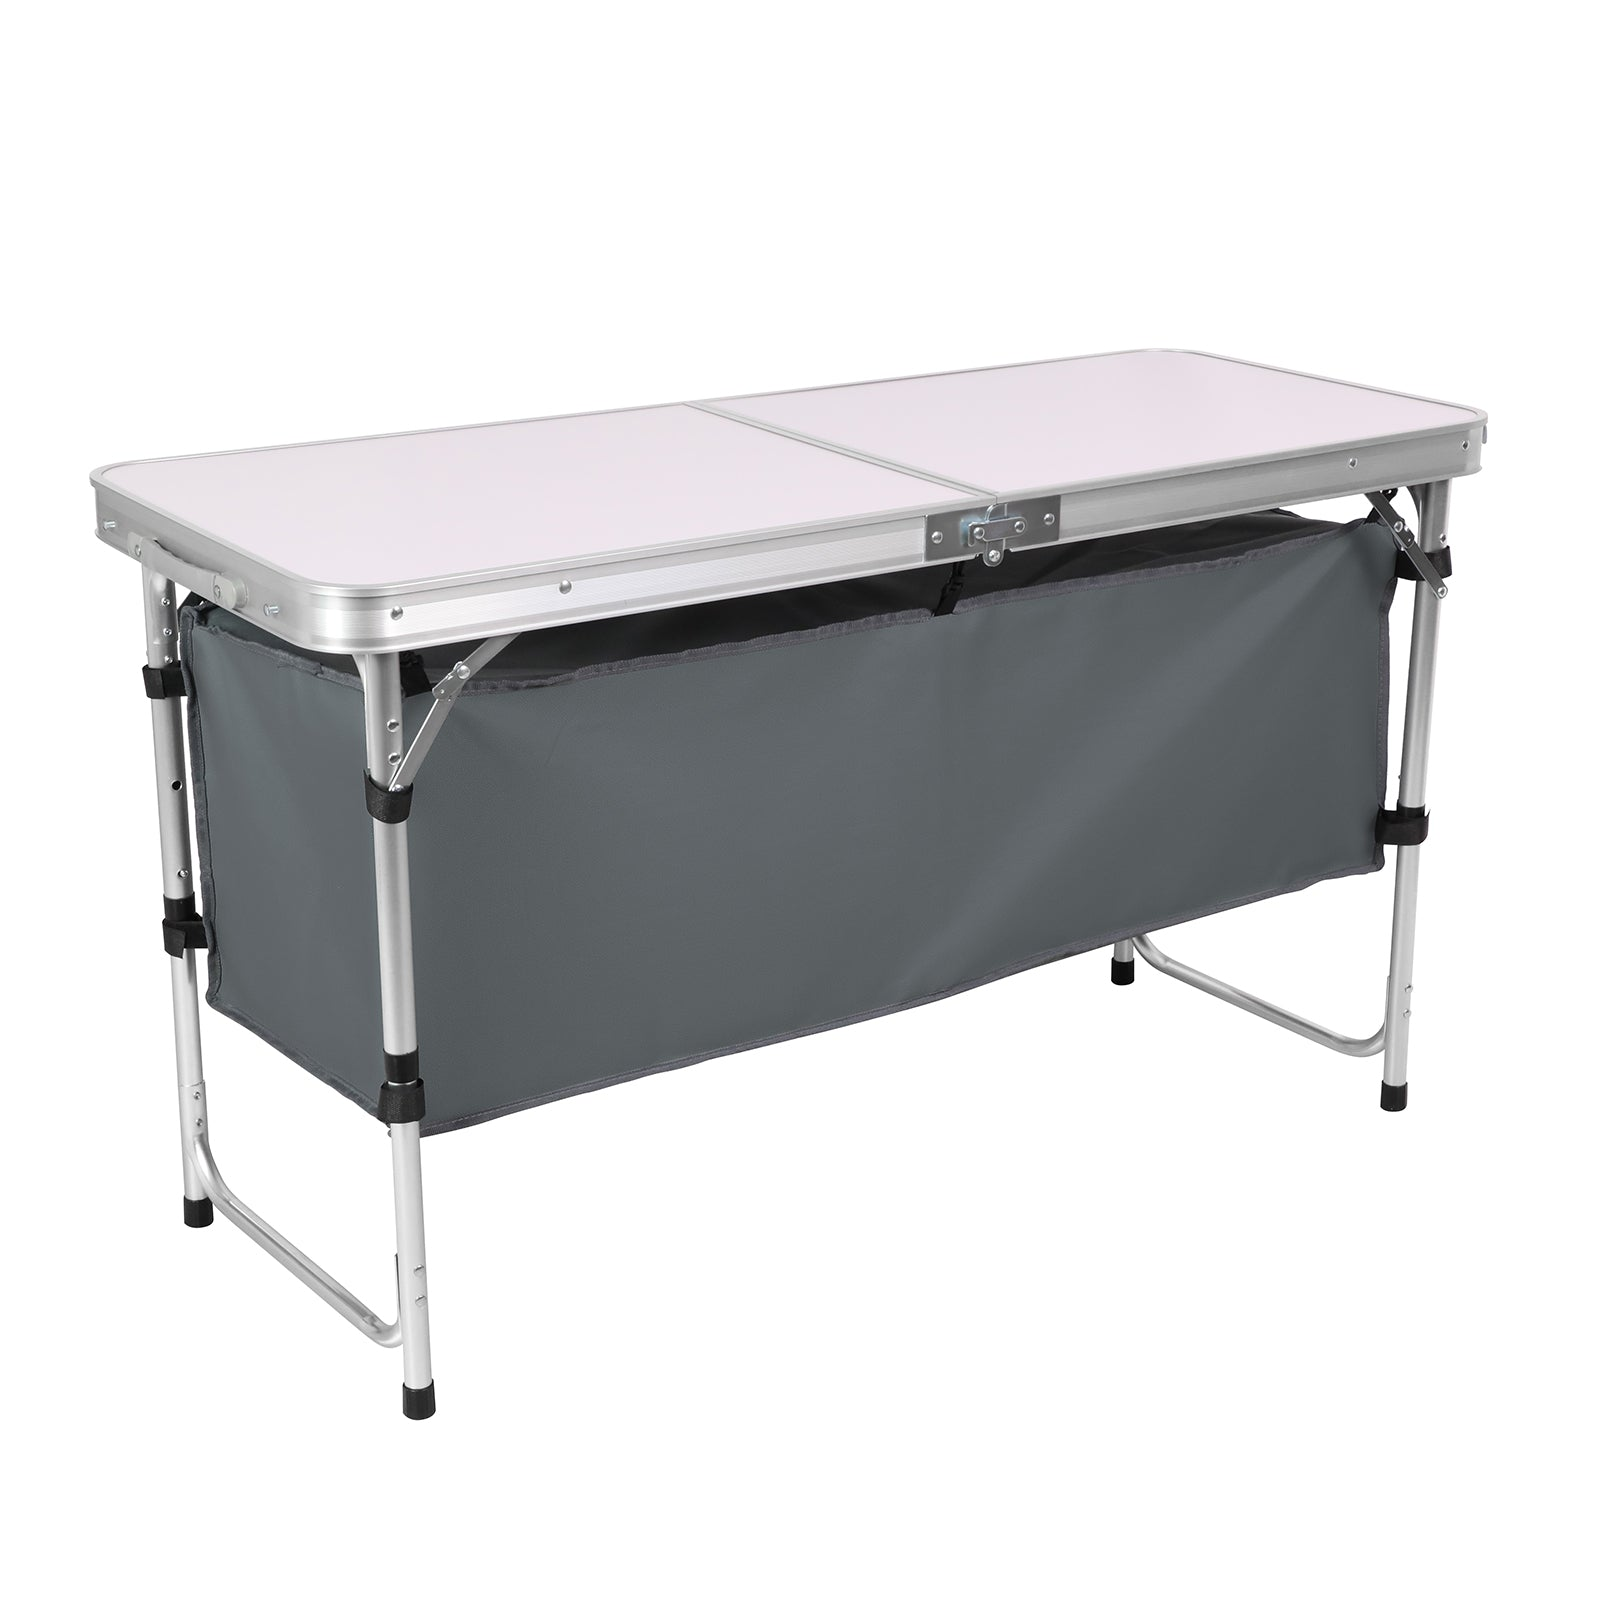 Dim Gray Folding Camping Picnic Table w/Extended Panel, Compact Aluminum Lightweight Picnic Table Multi-Function BBQ Food Preparation Outdoor Indoor Kitchen Utility Table